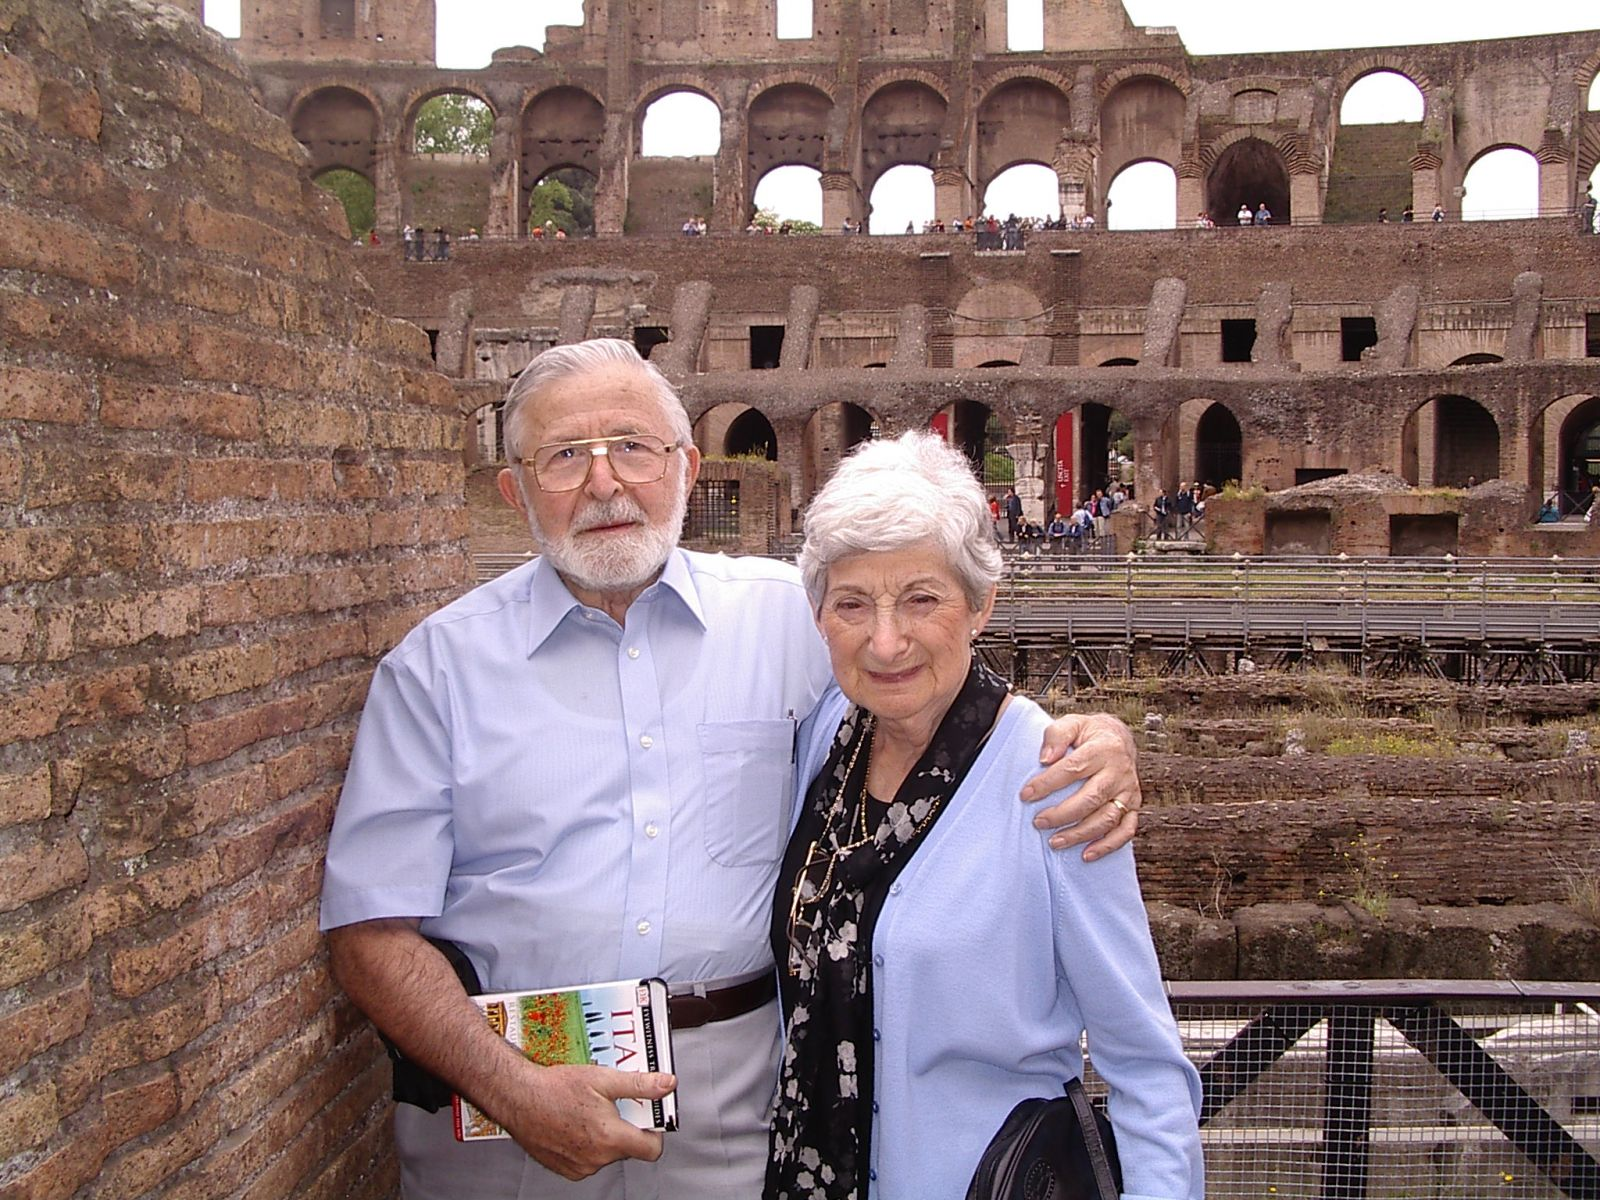 Nita & Ron at the Colisseum in Rome